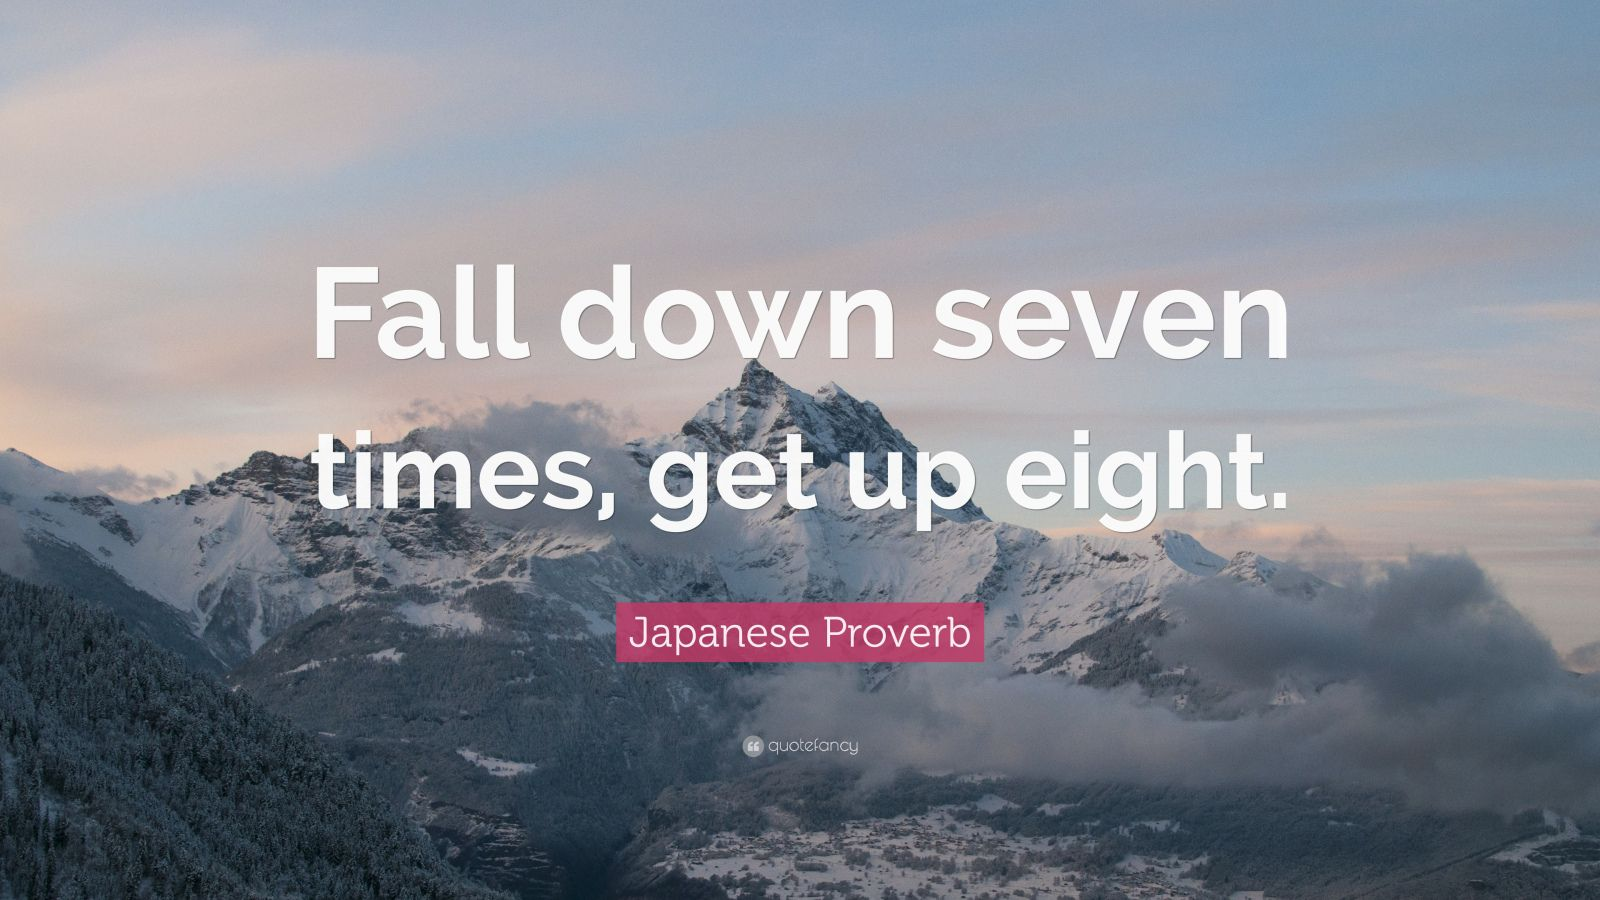 Cute Wallpapers Pinterest Laptop Quote Japanese Proverb Quote Fall Down Seven Times Get Up